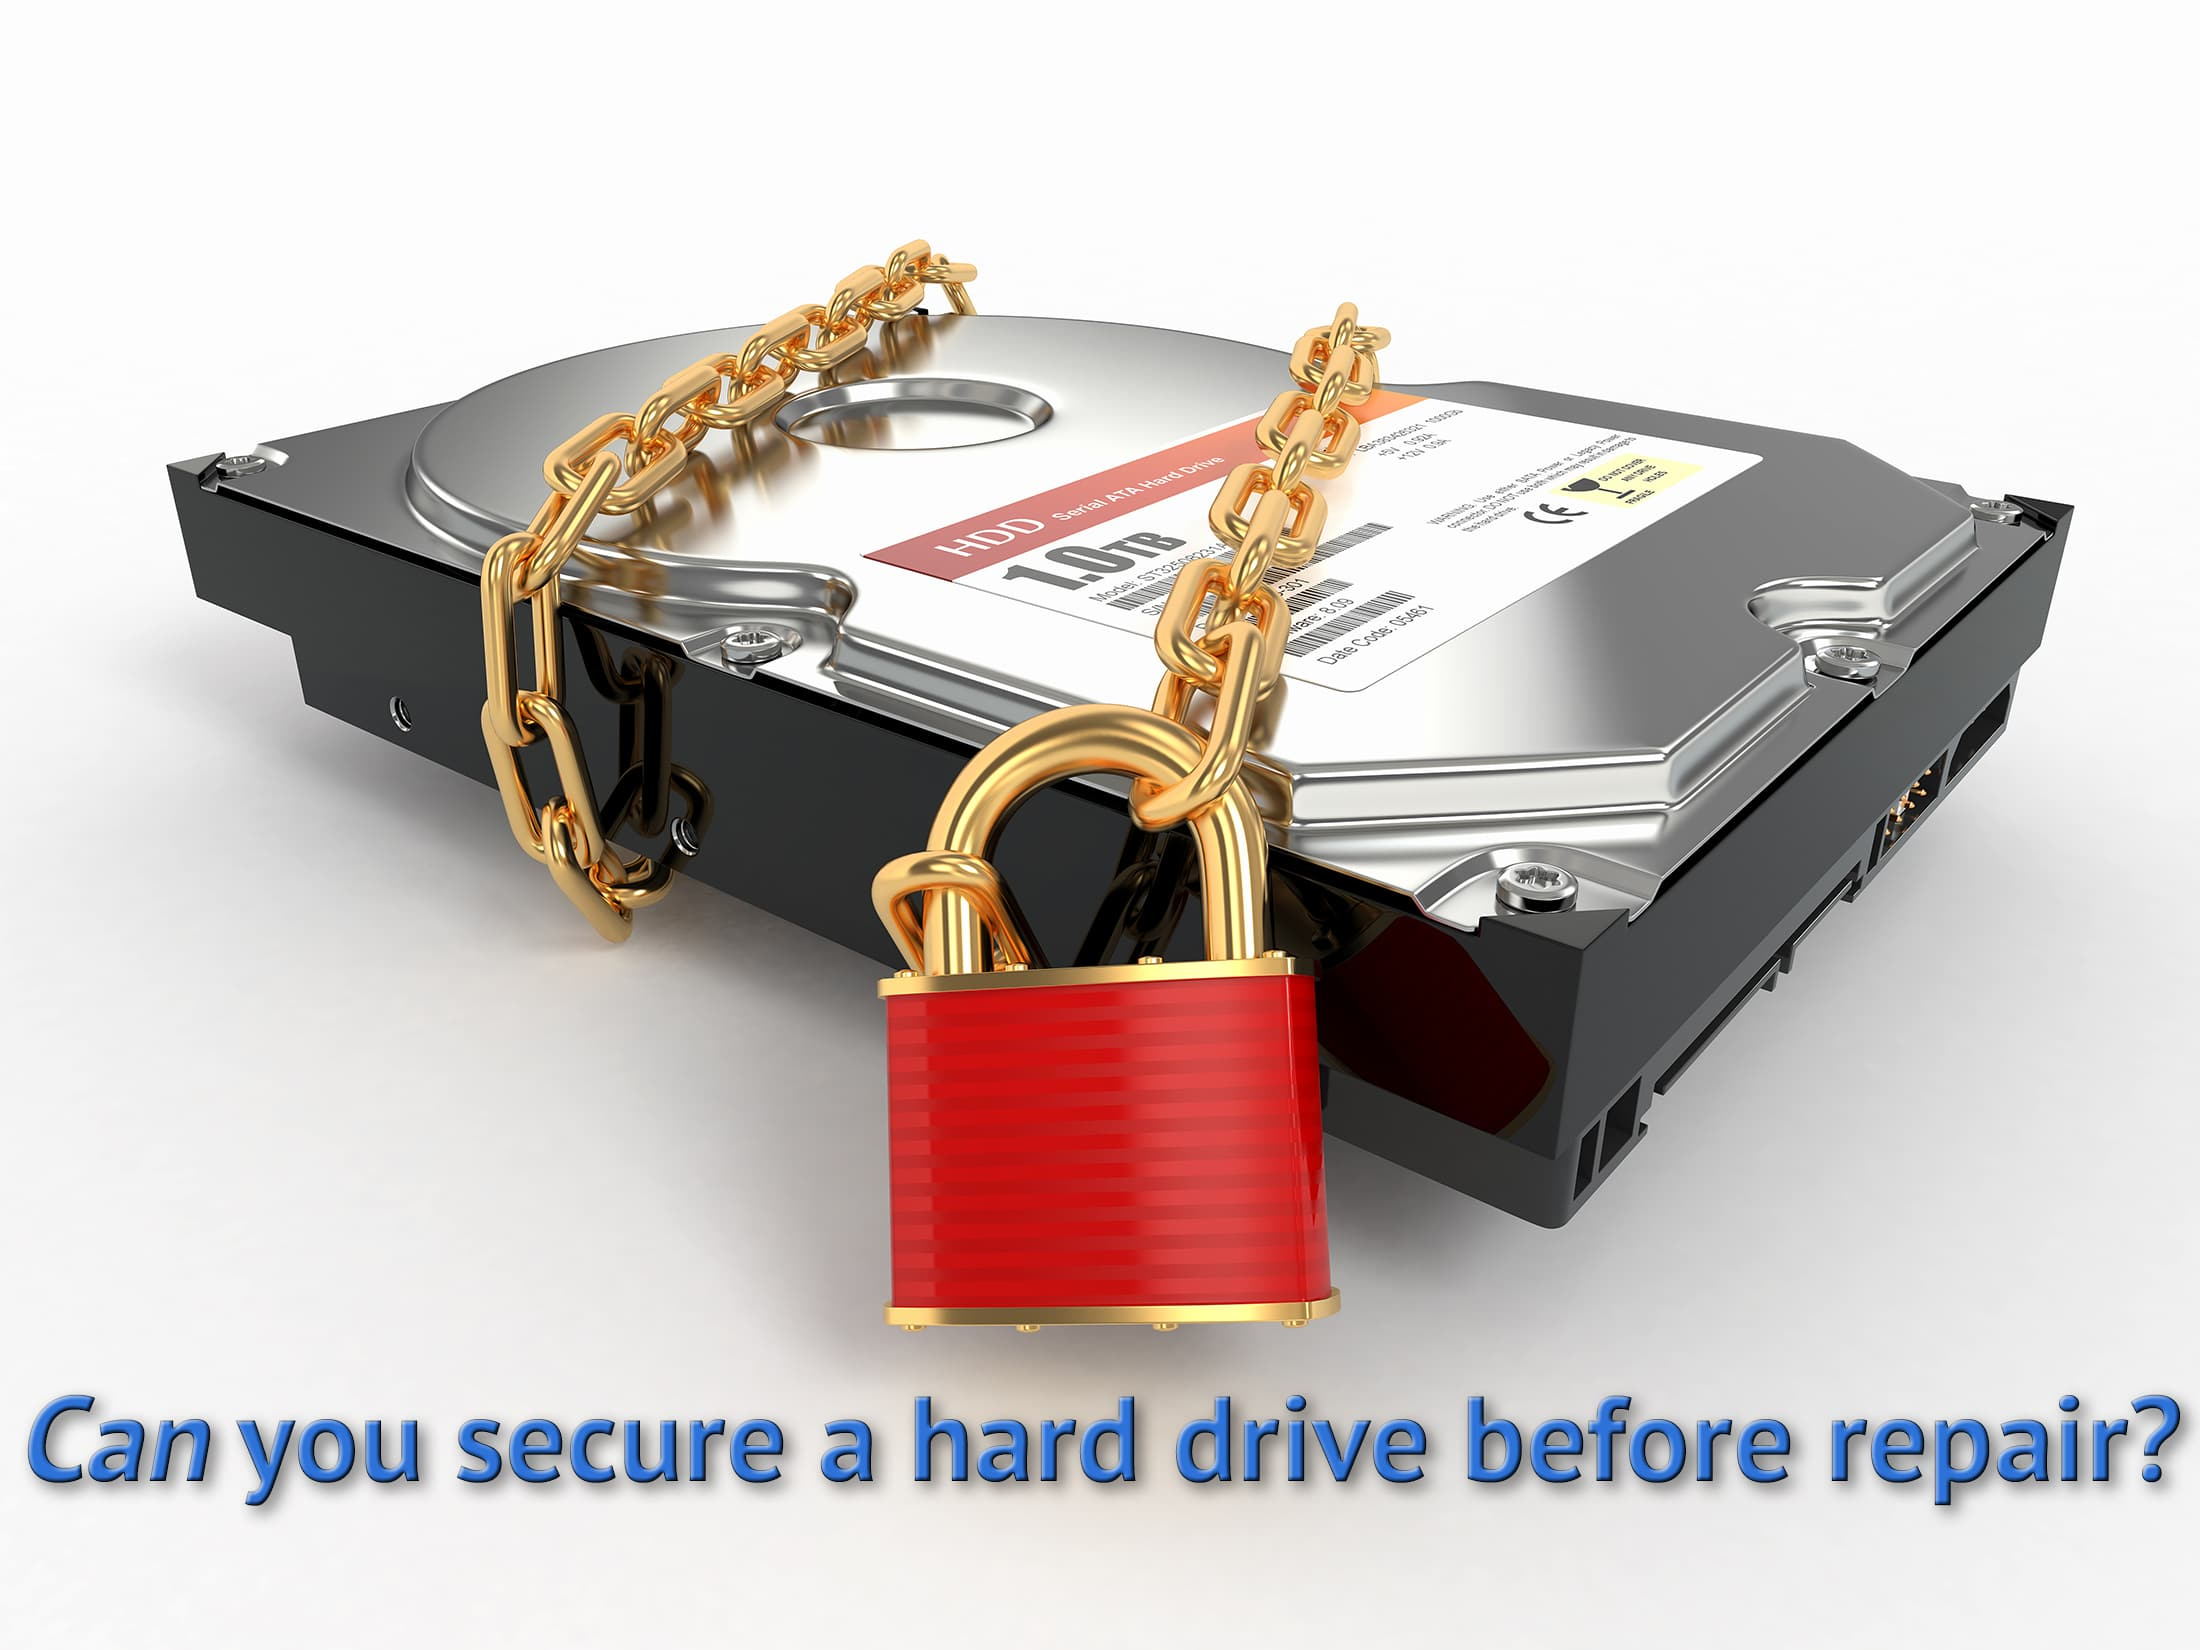 How do I secure a hard drive before sending it in for repair? - Ask Leo!